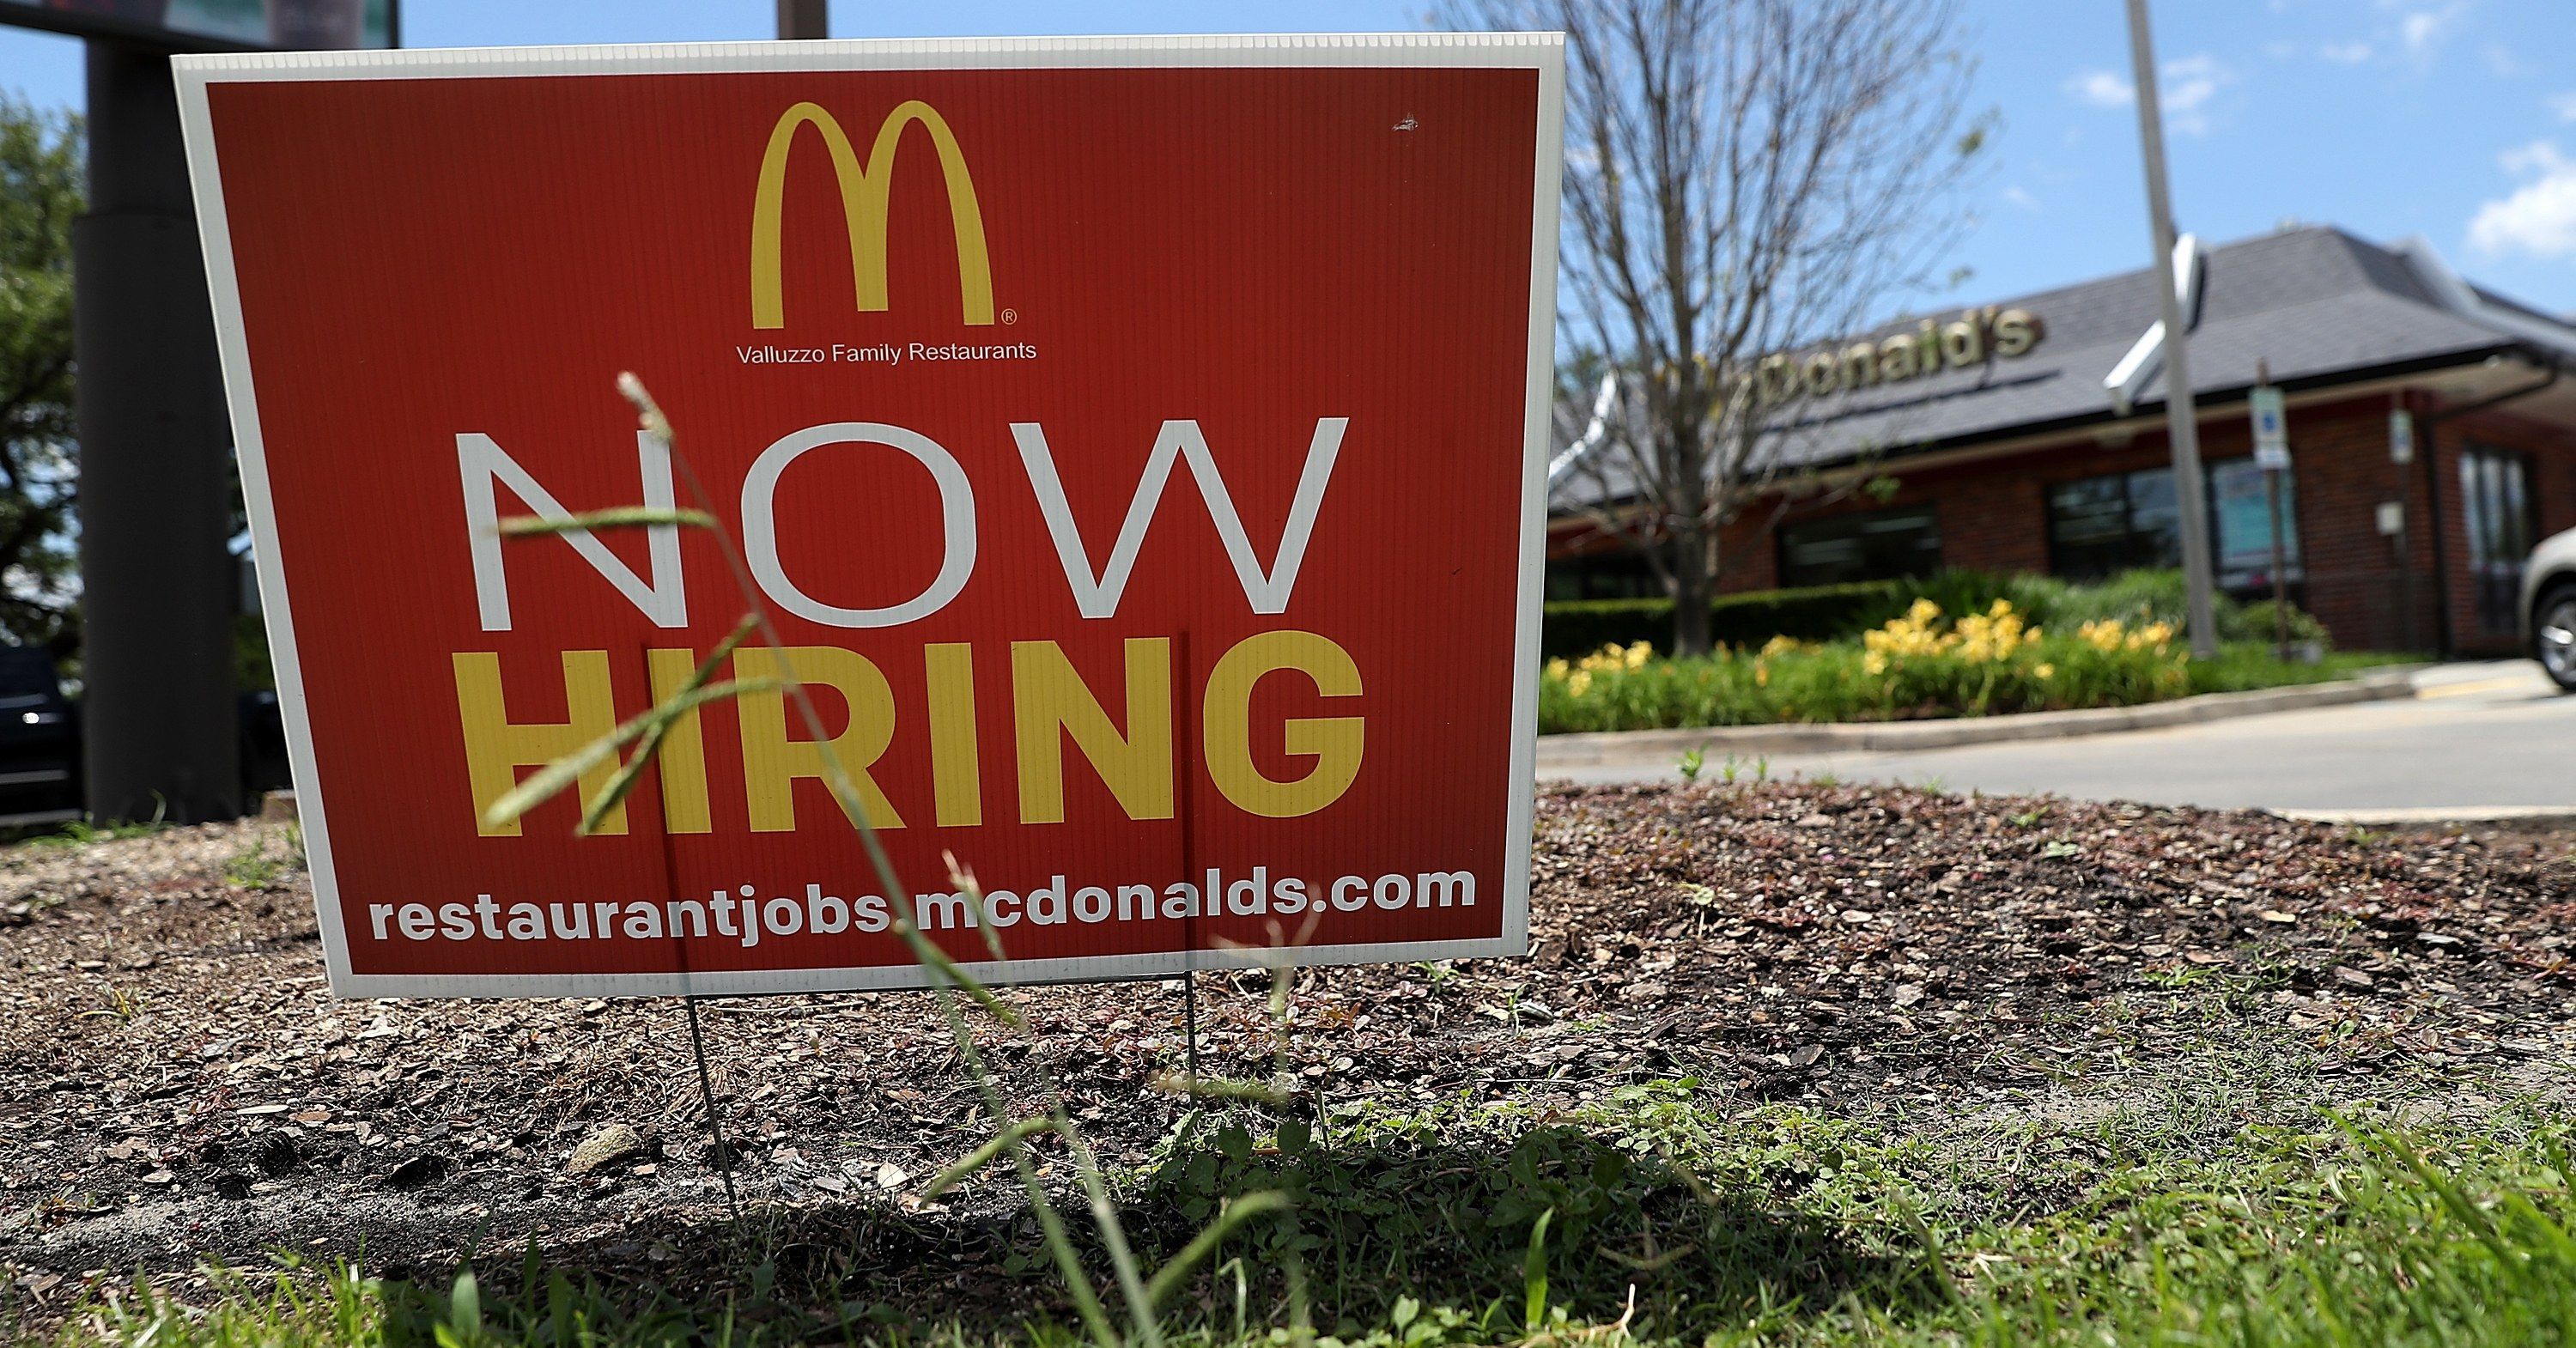 McDonald's Is Taking 10Second Job Applications on